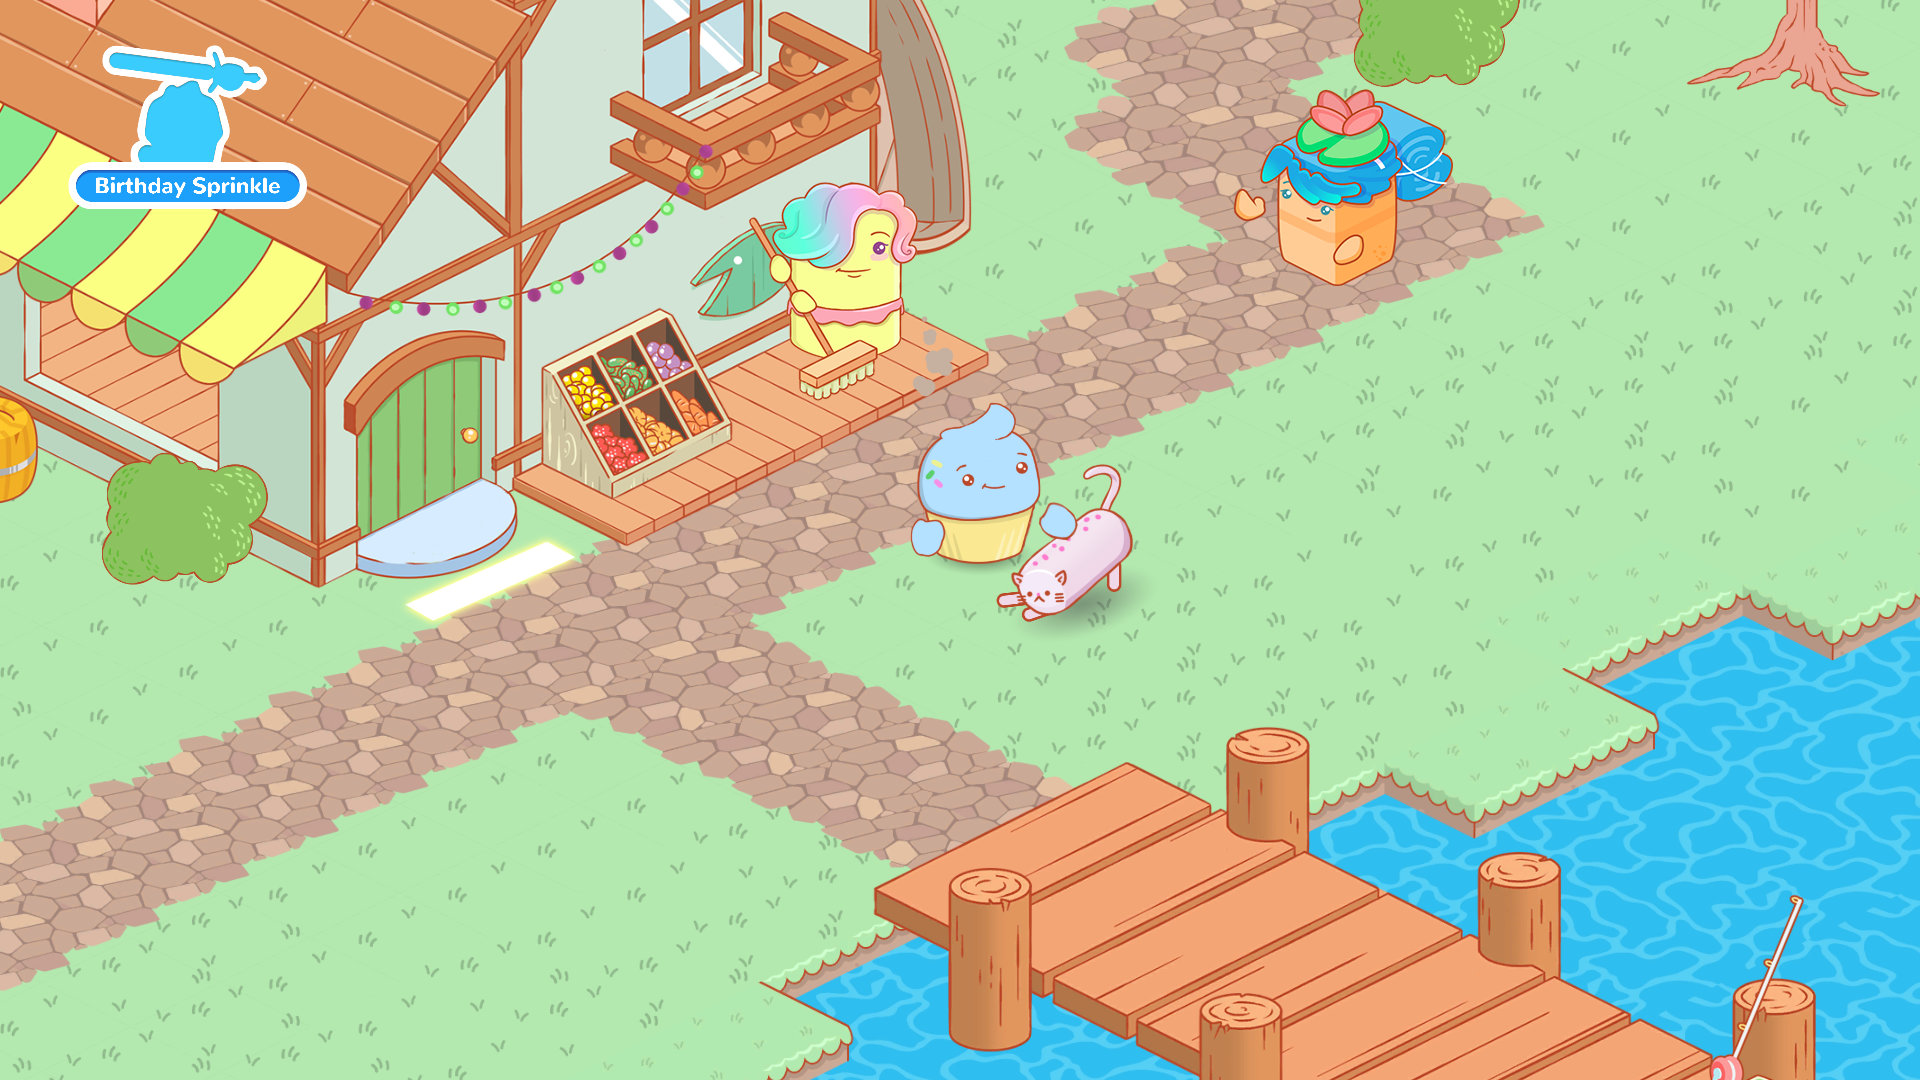 Three cupcake characters approach a dock, cat, and fishing shop.